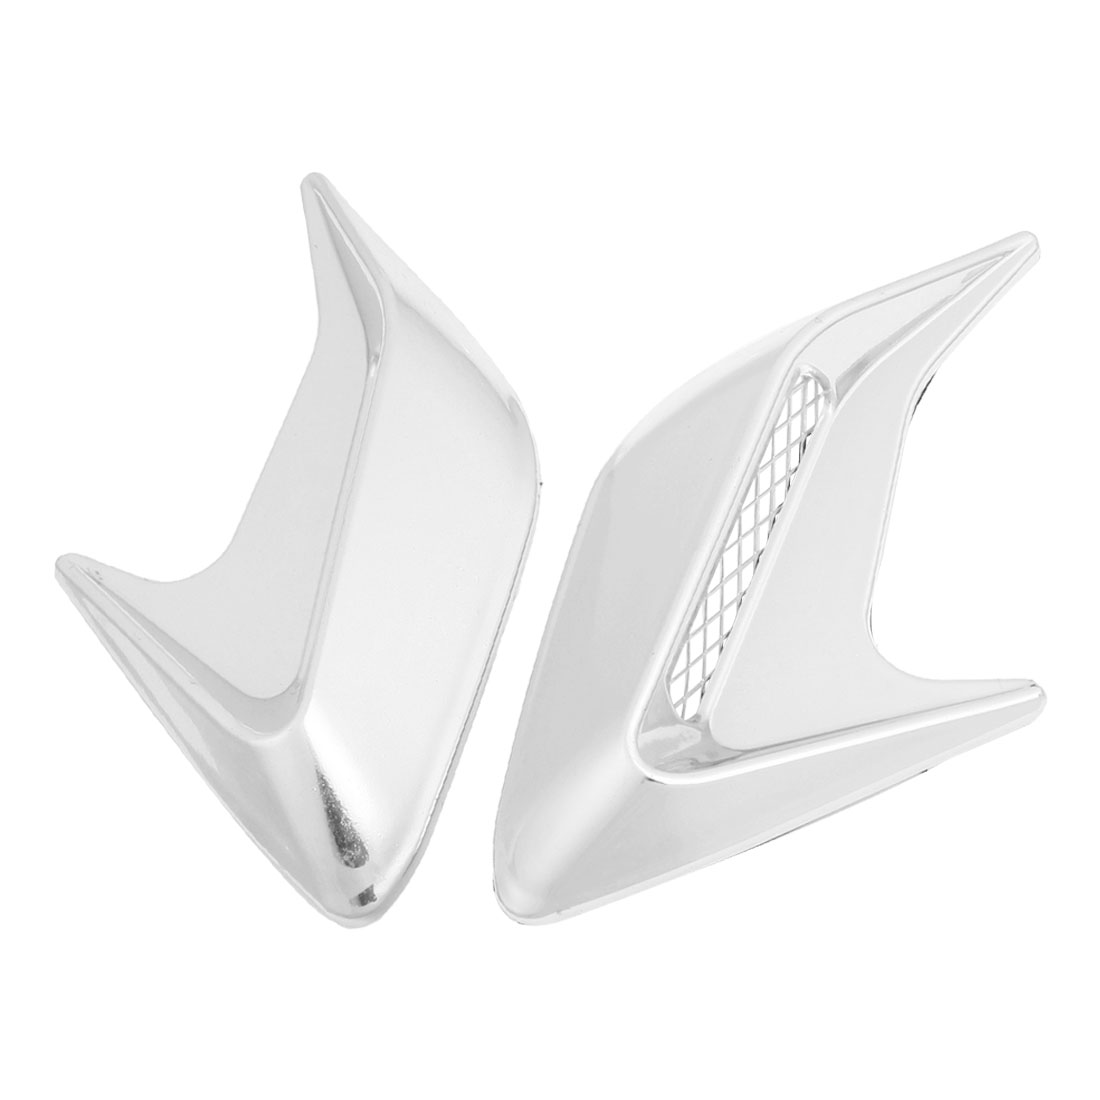 2 Pcs Car Exterior Shark Fin Shape Air Flow Fender Sticker Silver Tone